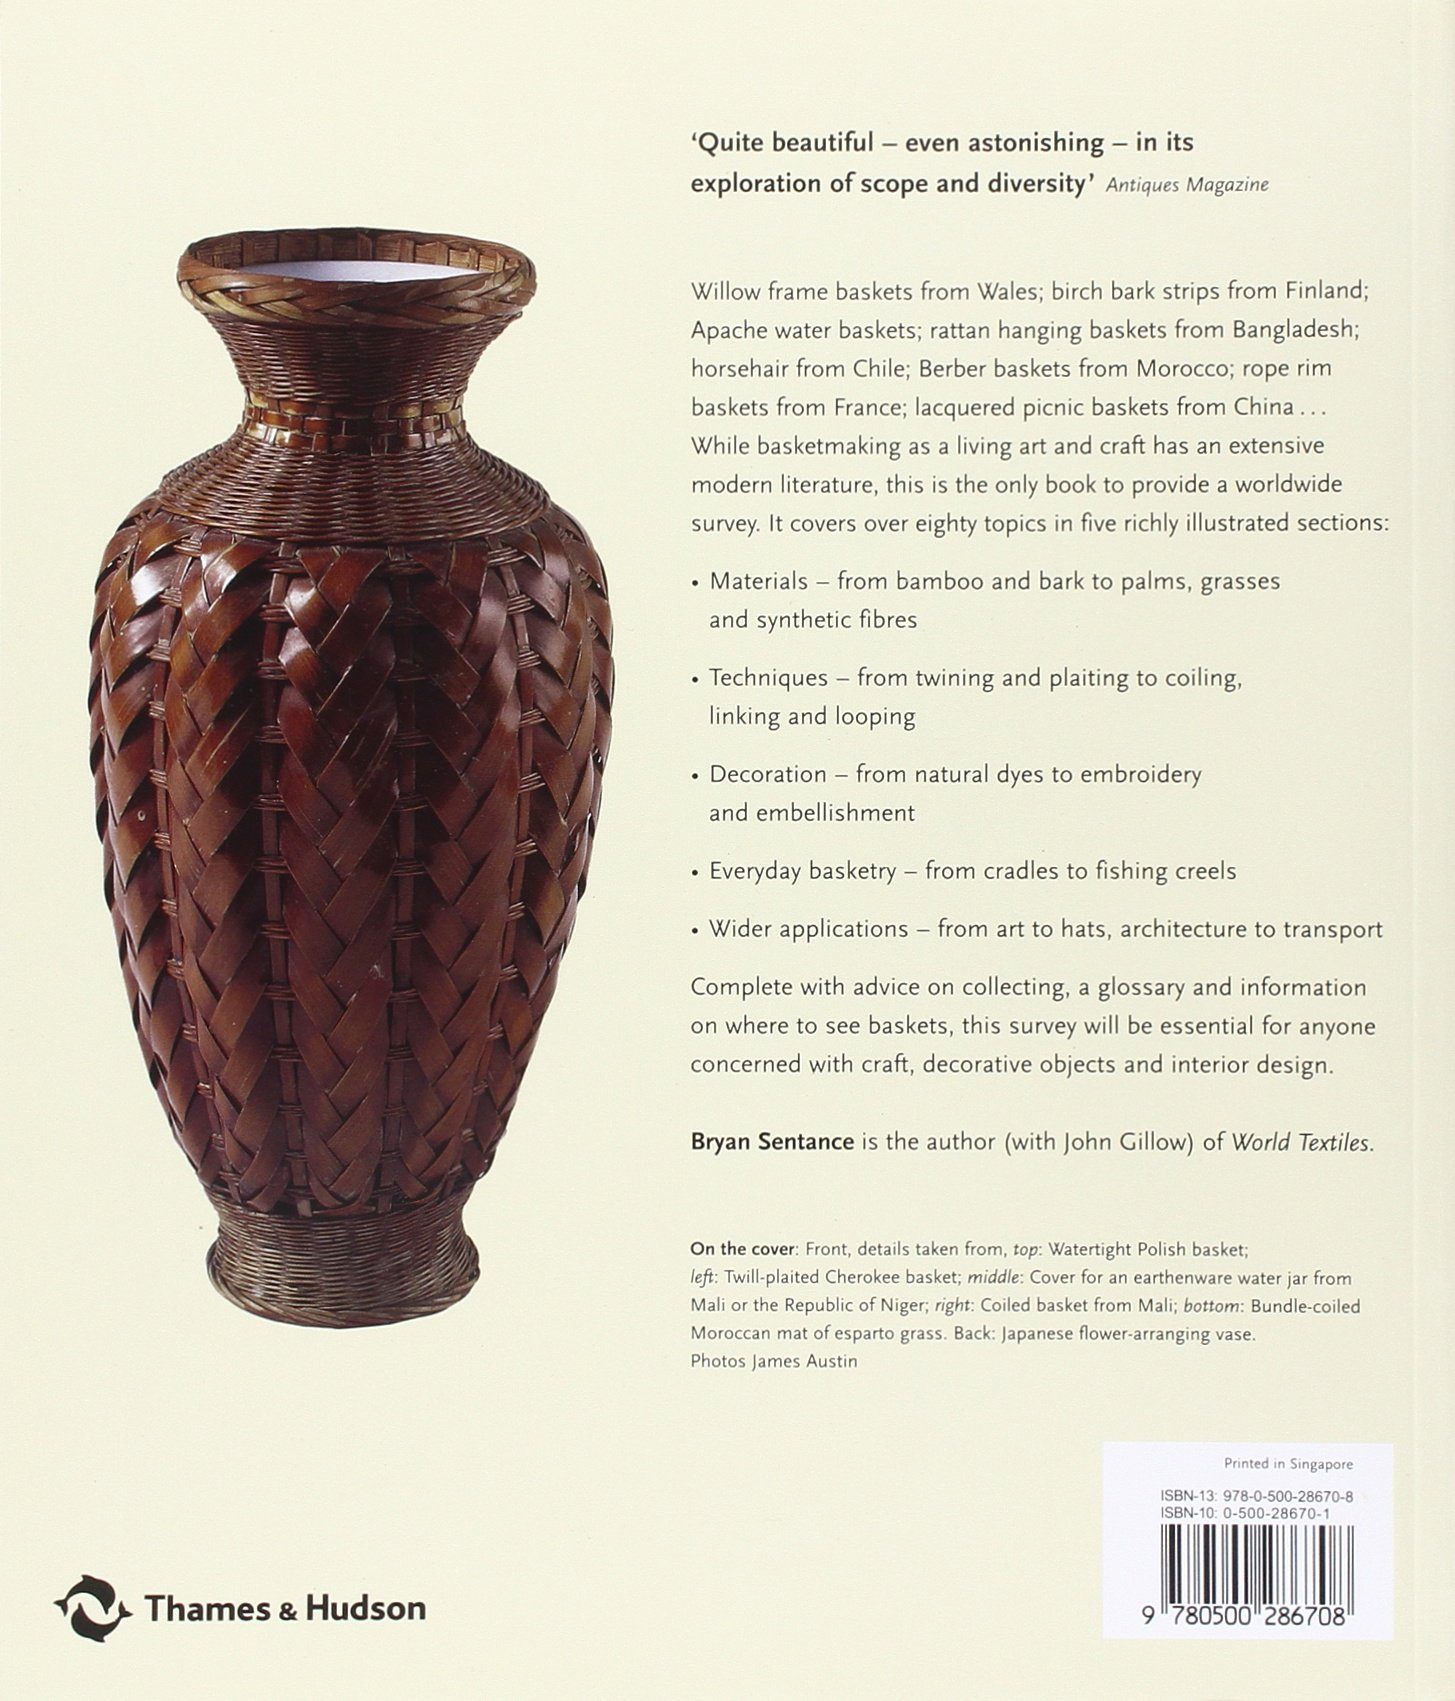 horsehair wedding vase of basketry a world guide to traditional techniques bryan sentance for basketry a world guide to traditional techniques bryan sentance 8601417670972 amazon com books